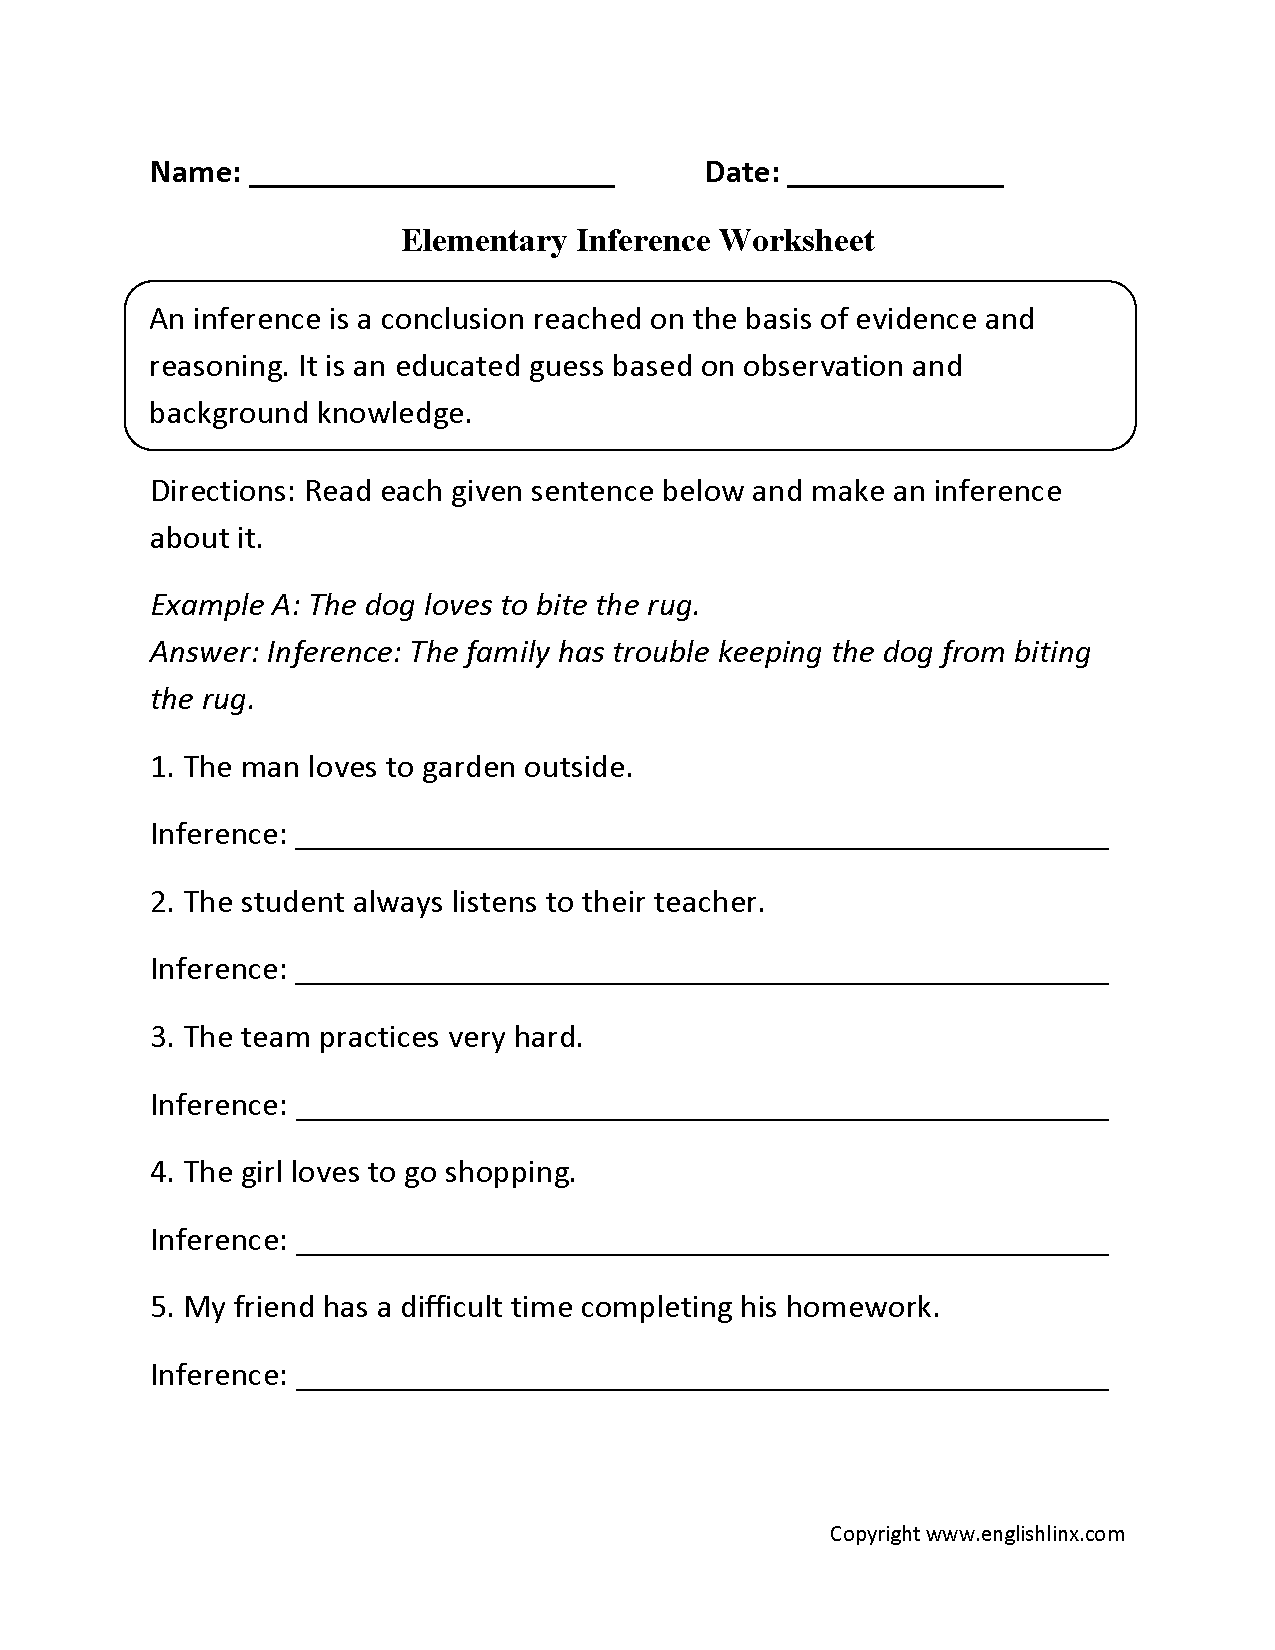 Worksheets Inferences Worksheet 2 reading worksheets inference worksheets